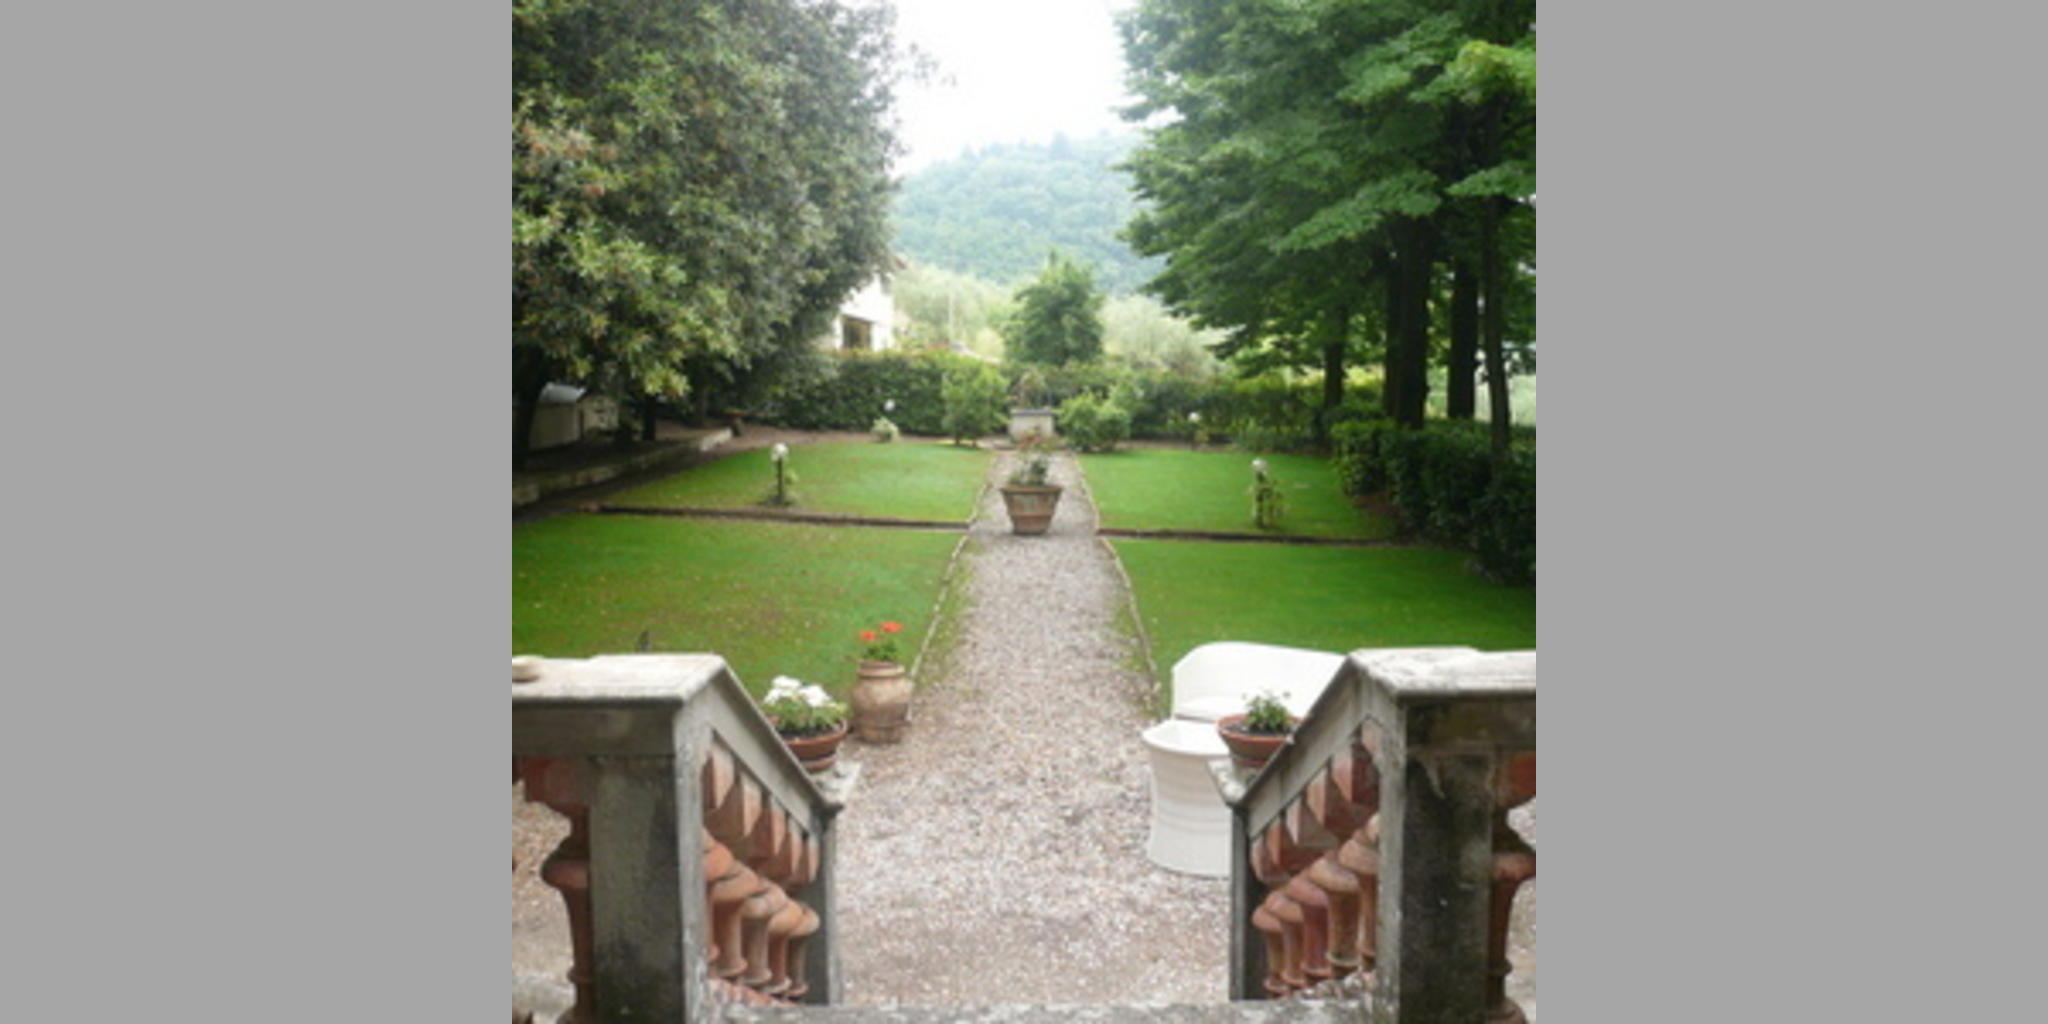 Bed & Breakfast Montemurlo - Montemurlo